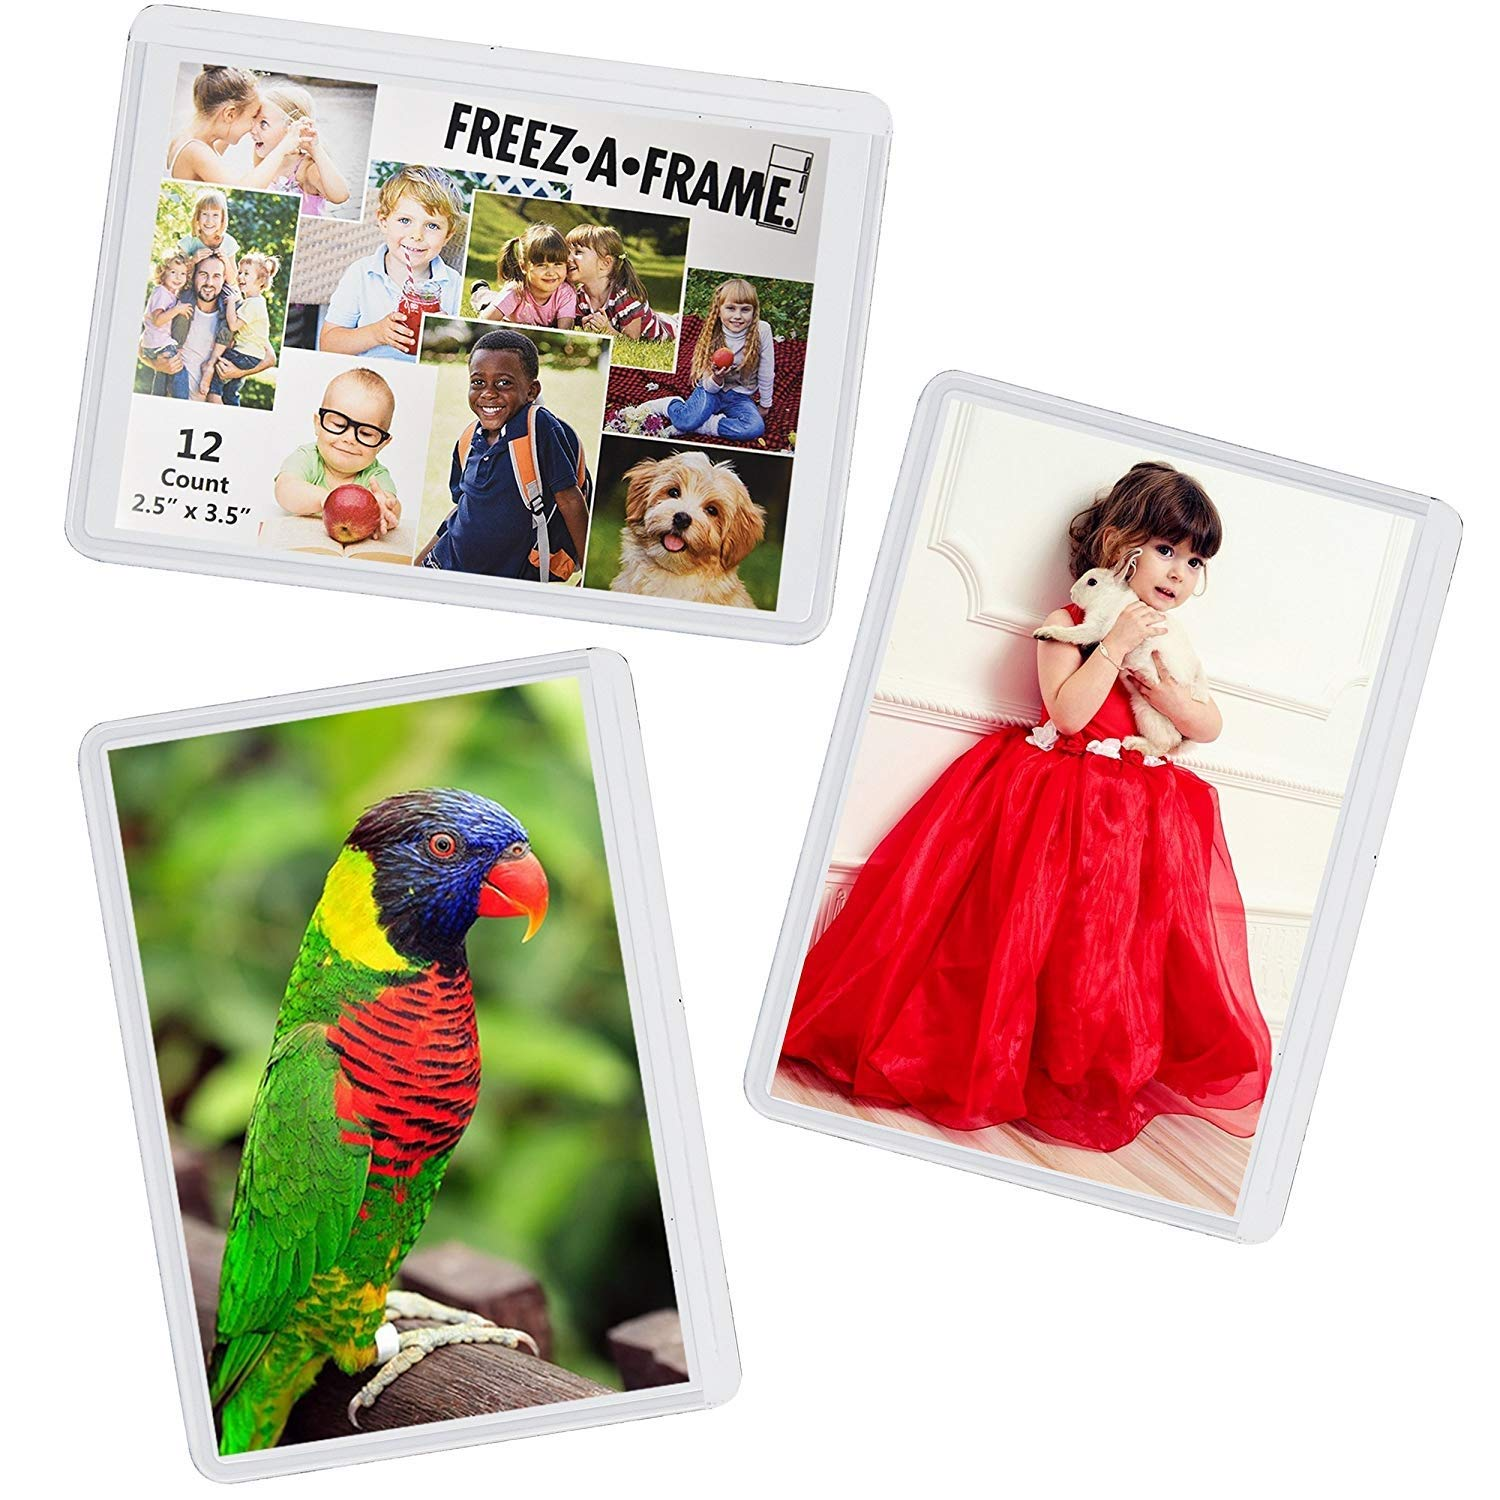 20 Pack 2.5 X 3.5'' Magnetic Picture Frames for 2 1/2 X 3 1/2 Inch Photo Plastic Refrigerator Insert Holder Sleeve Pocket by Freez-a-frame Made in The USA by Freeze A Frame